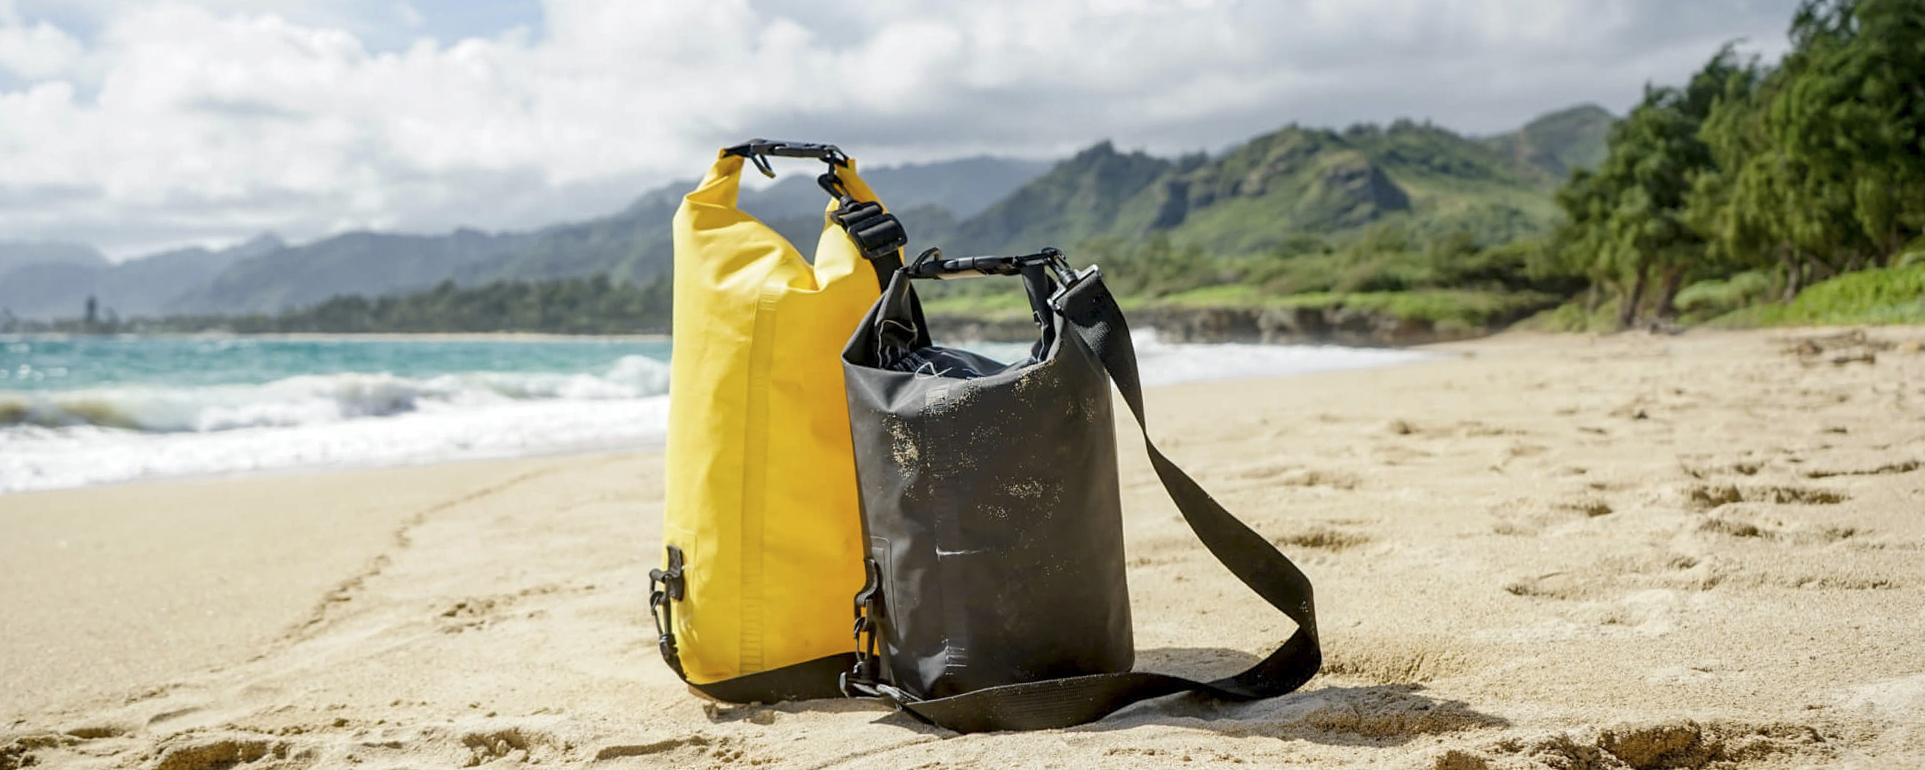 Dry Bags for Rent on Oahu